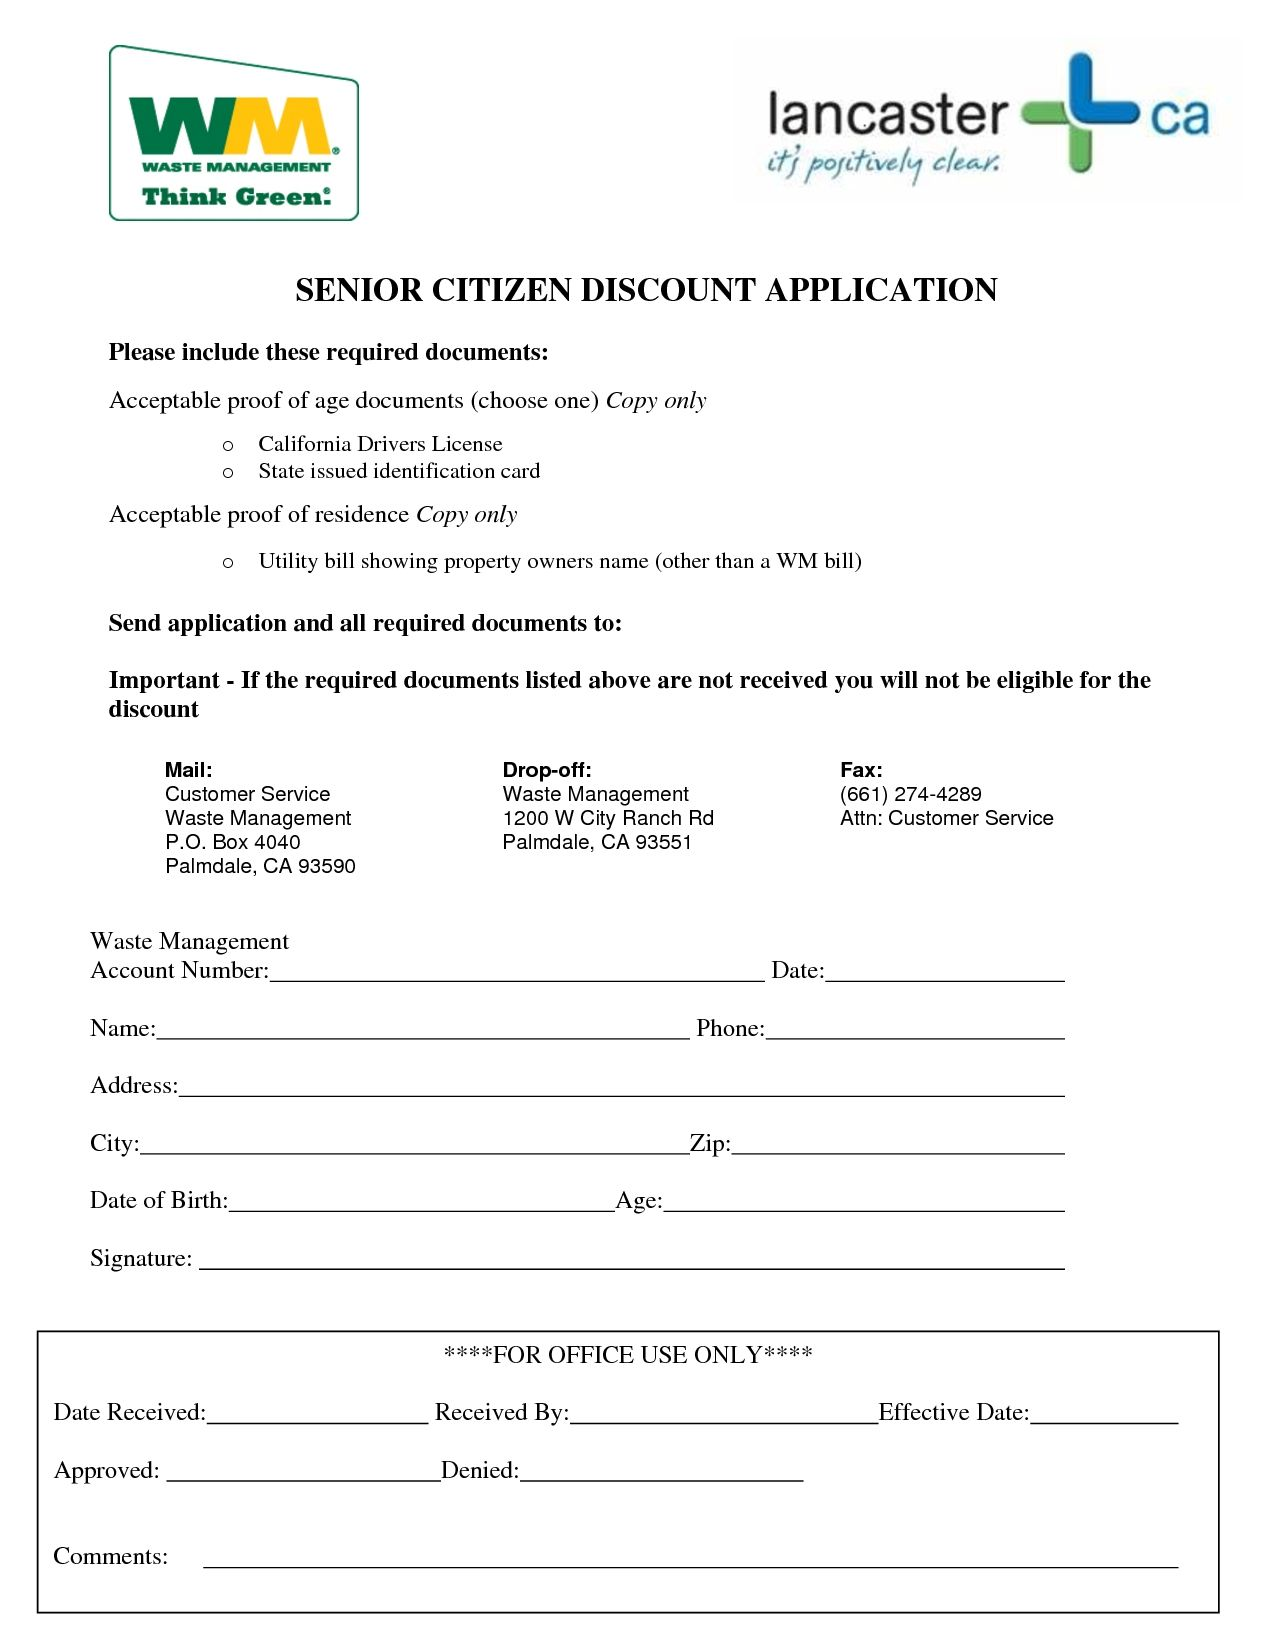 Pin by Verification Documents on Fake Documents | Pinterest